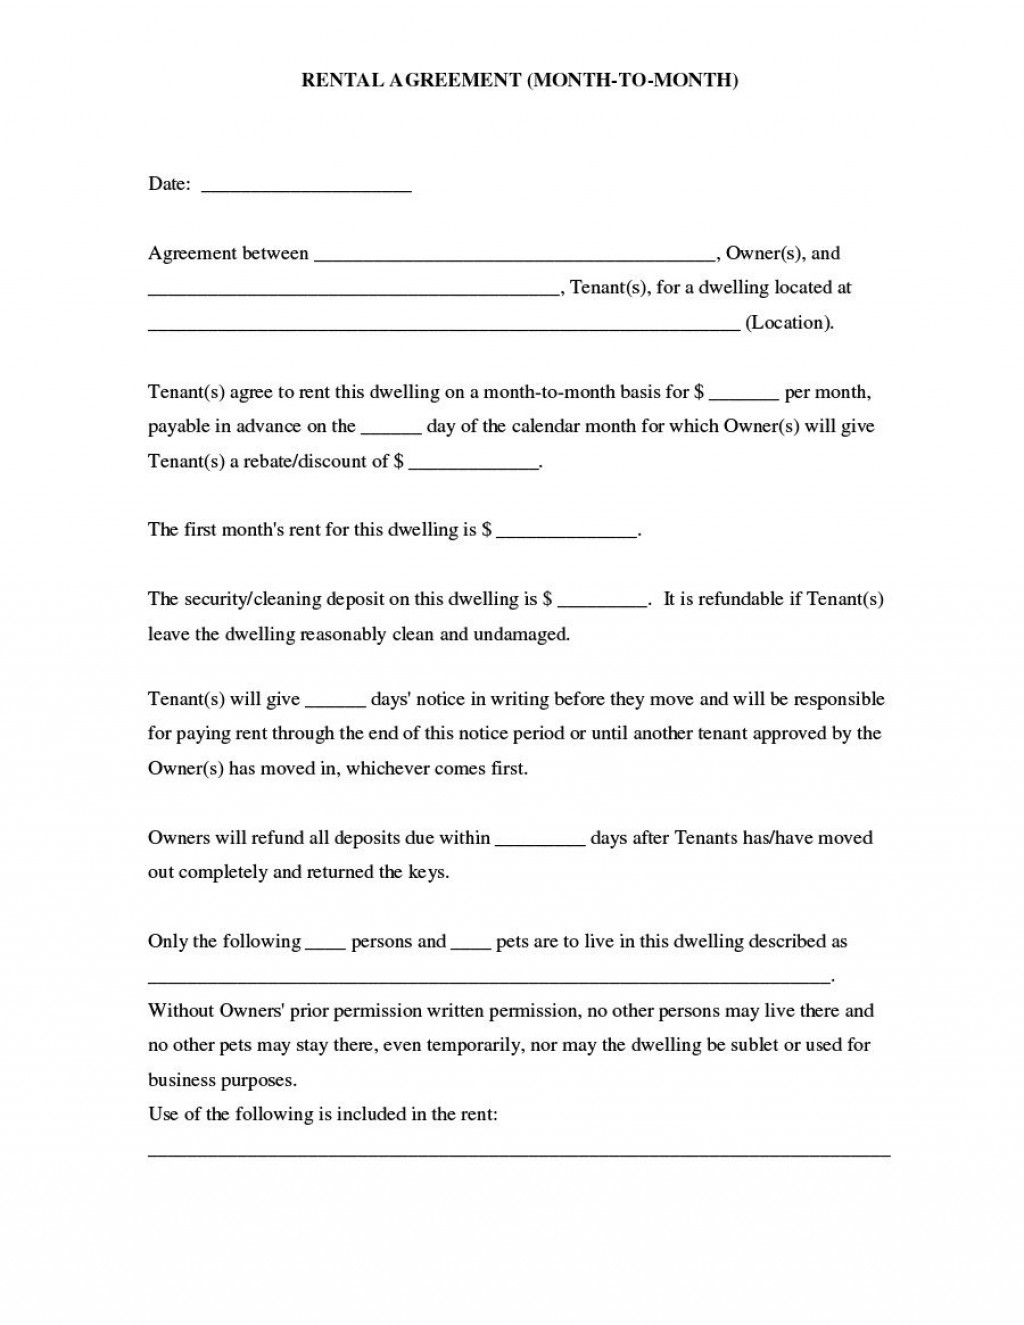 003 Fascinating Room Rental Agreement Template Word Doc Malaysia High Def Large